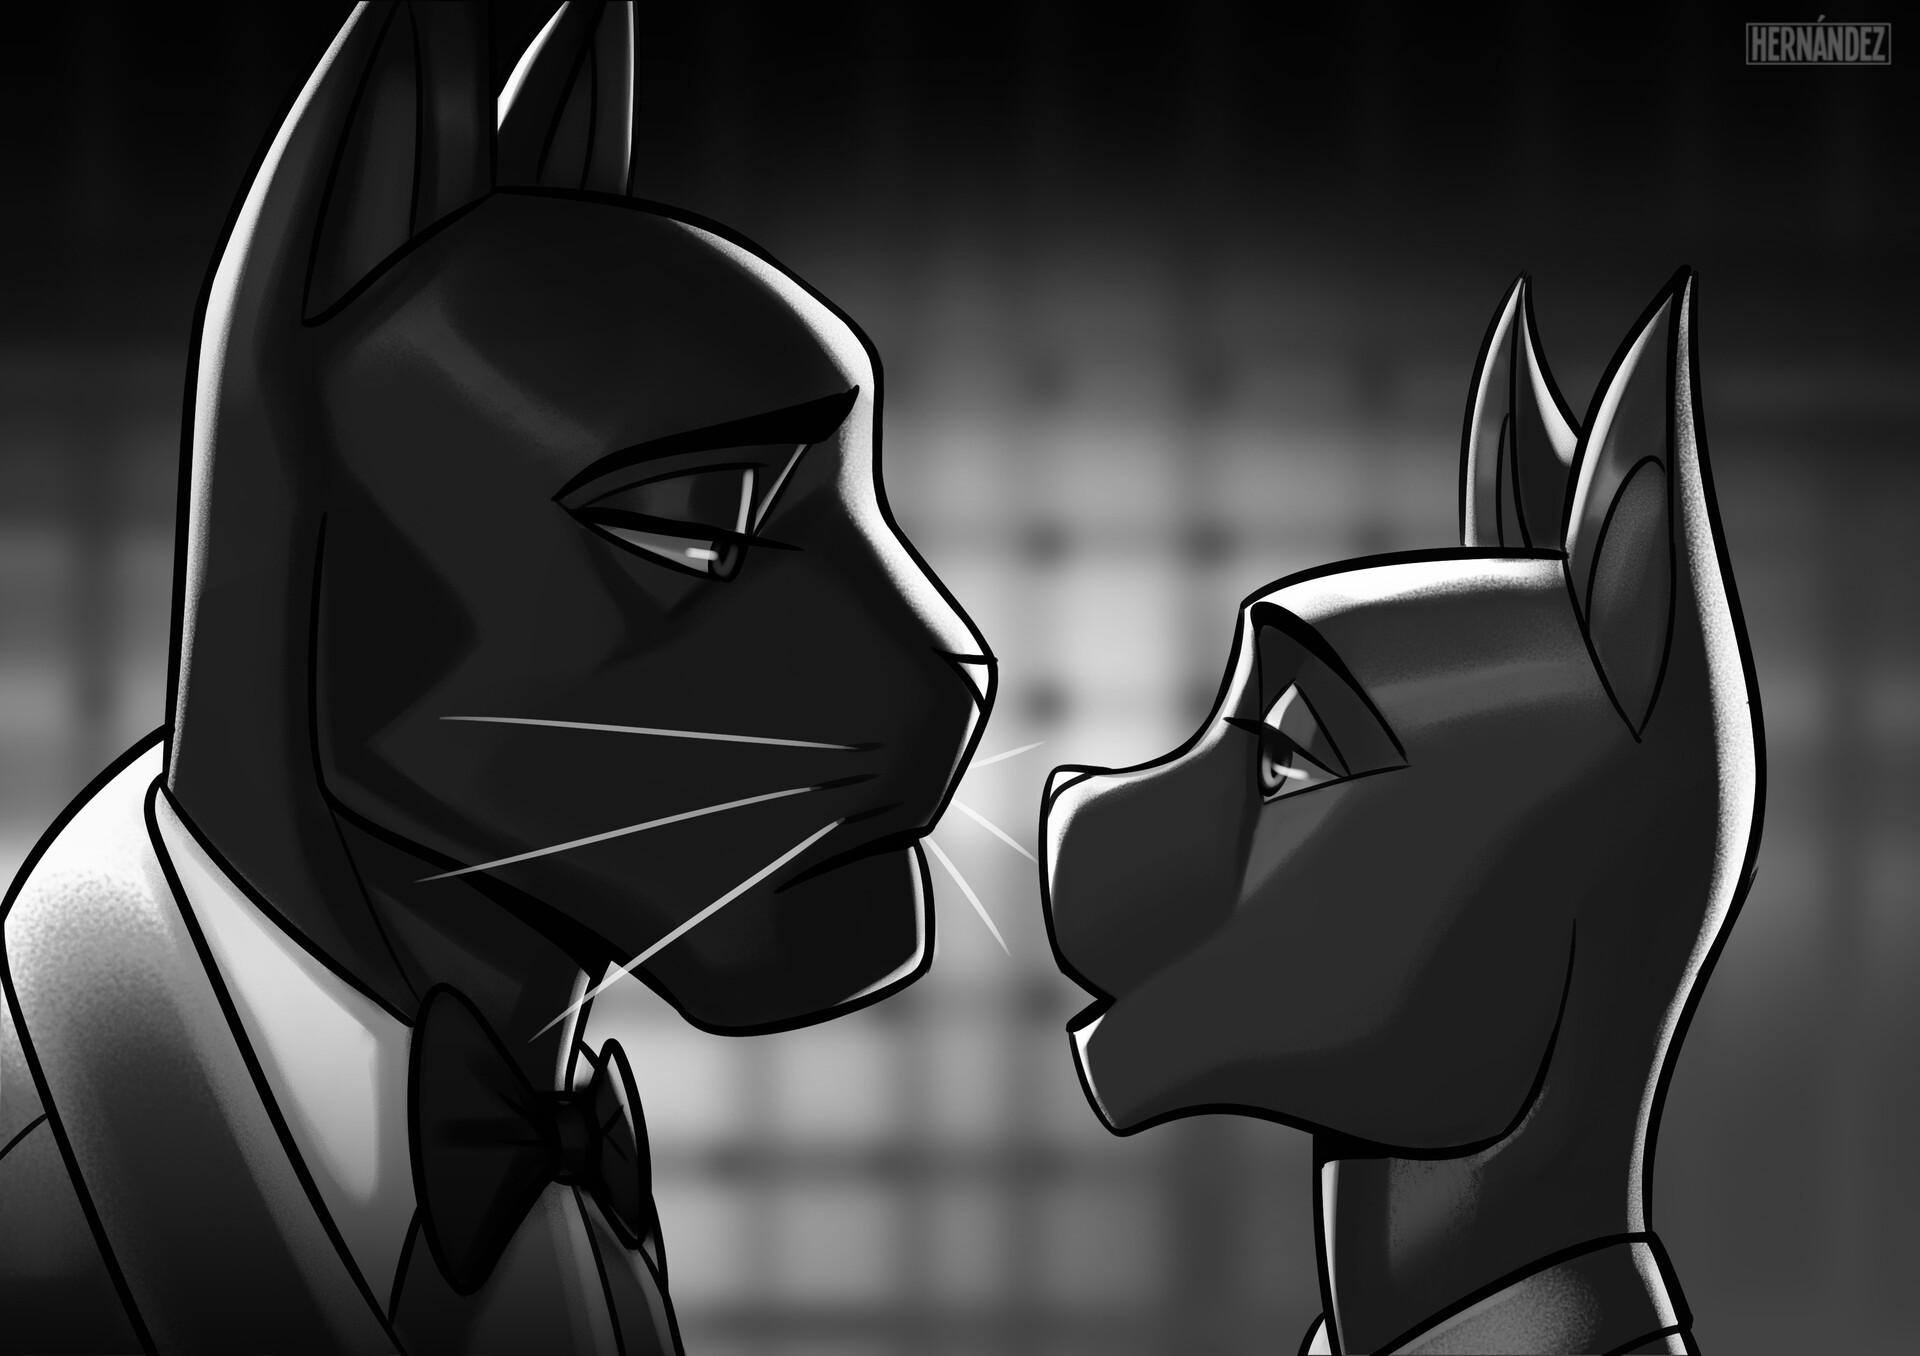 Catsablanca